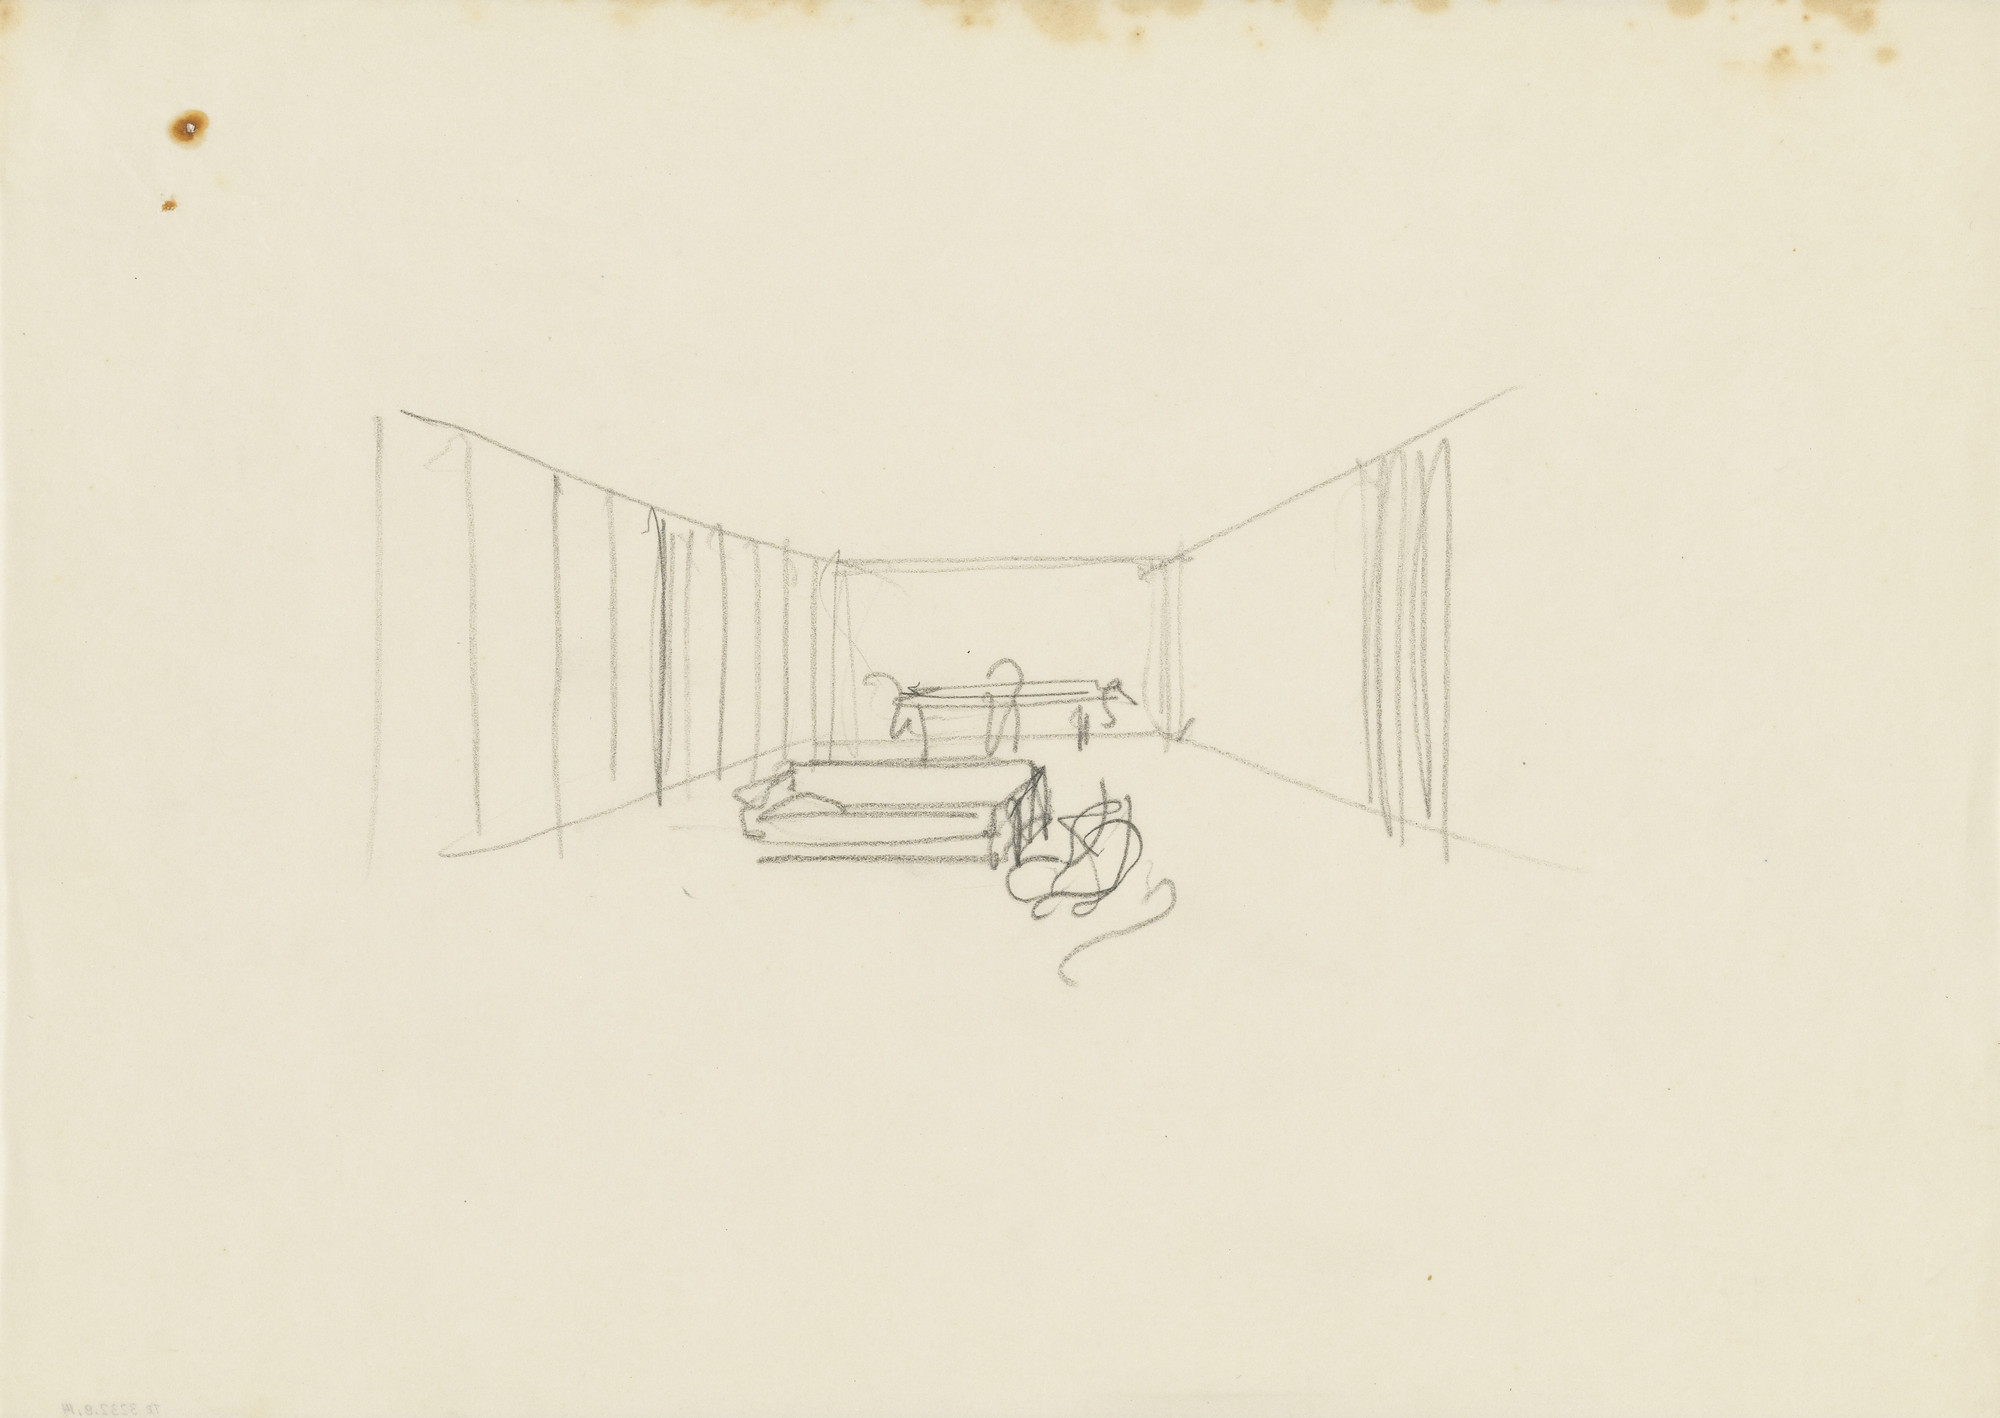 Ludwig Mies van der Rohe. Lemke House, Berlin, Germany, Interior perspective. 1932-1933